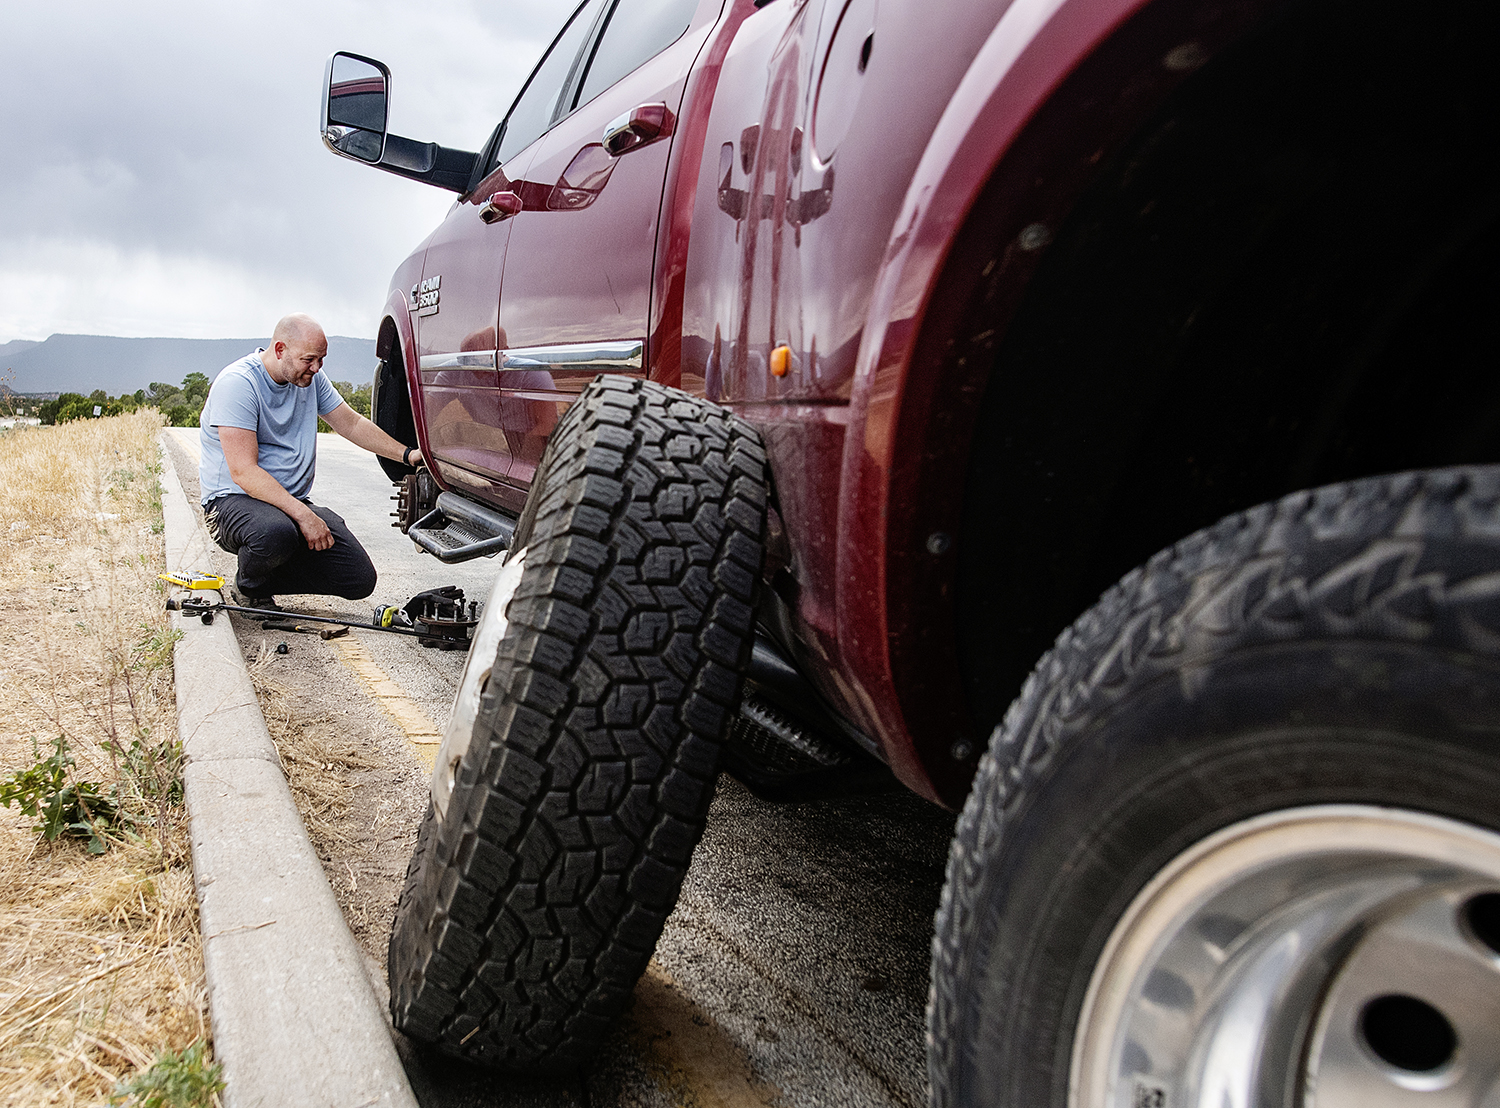 truck with tire off while broken down